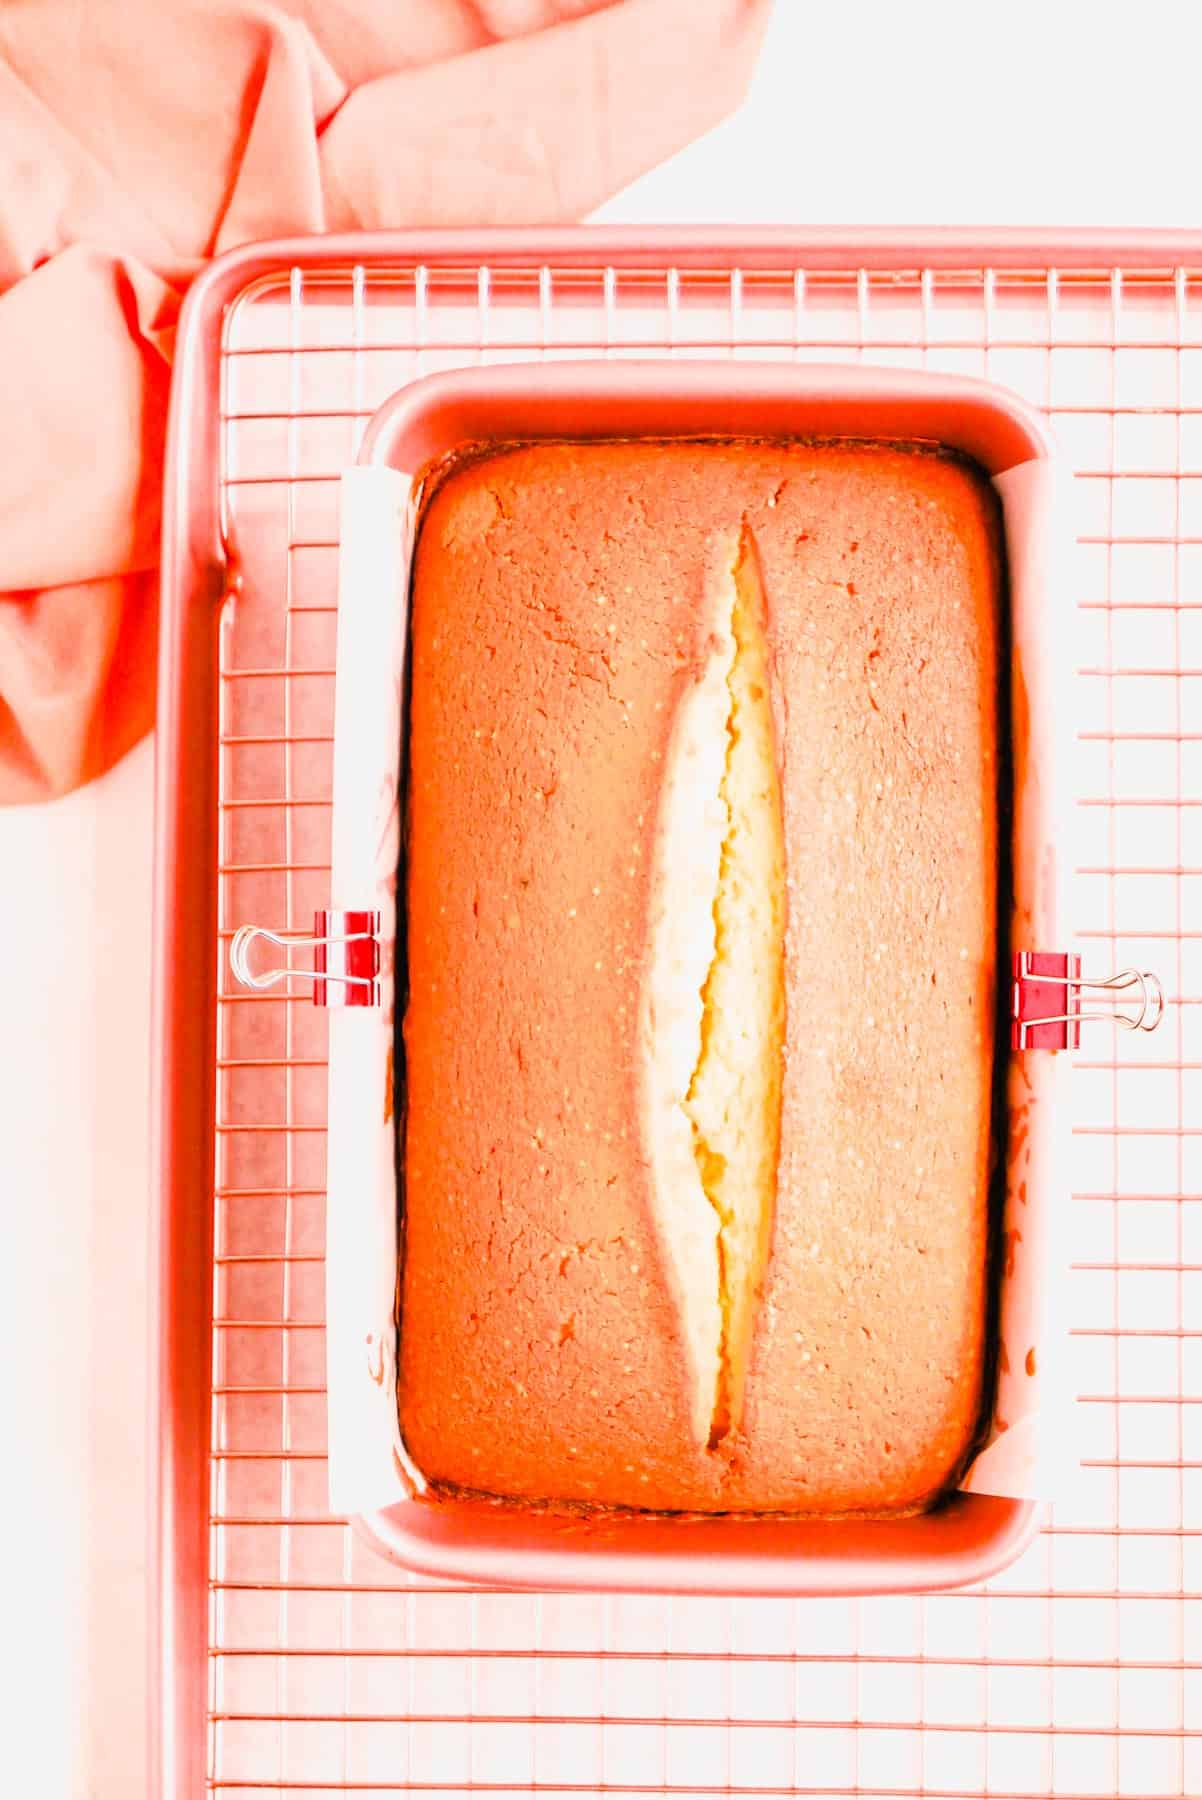 a fully baked citrus pound cake in a pink pan on a copper wire rack.